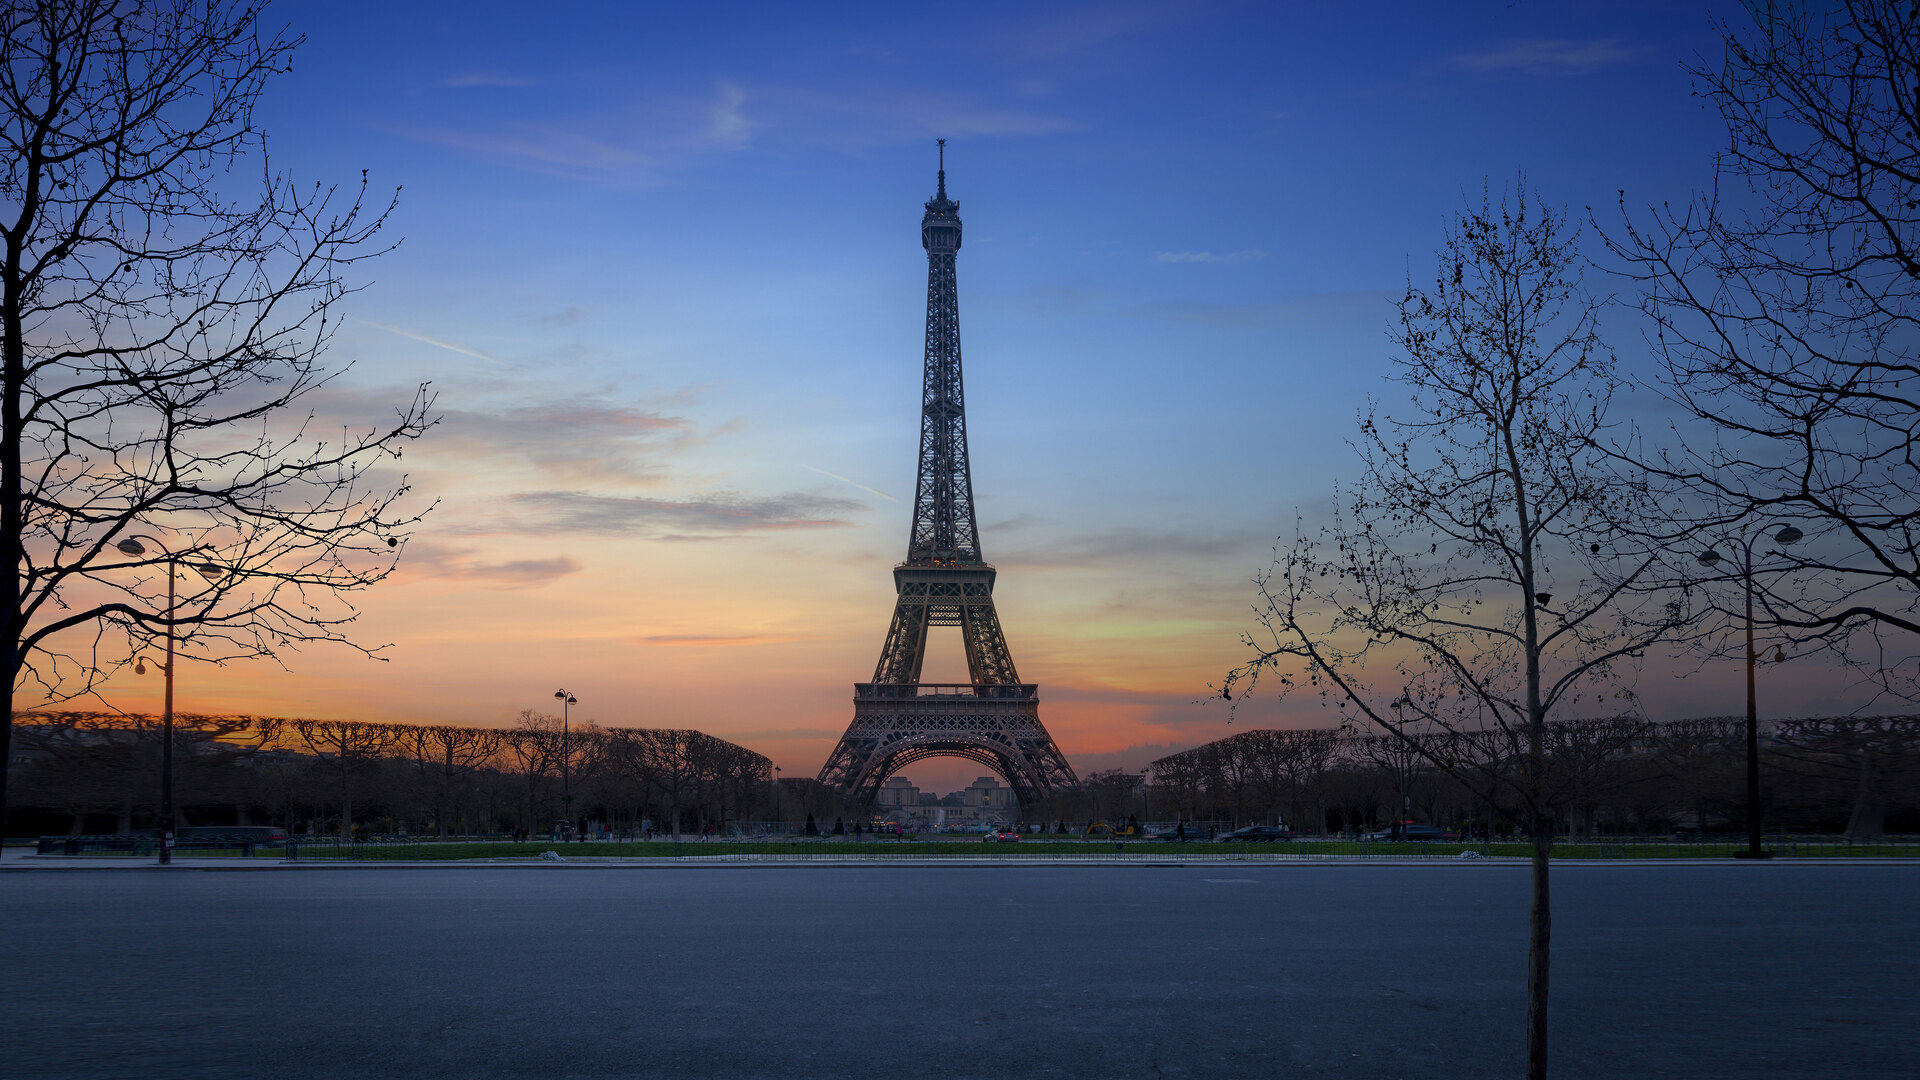 1920x1080 eiffel tower paris laptop full hd 1080p hd 4k - Paris eiffel tower desktop wallpaper ...